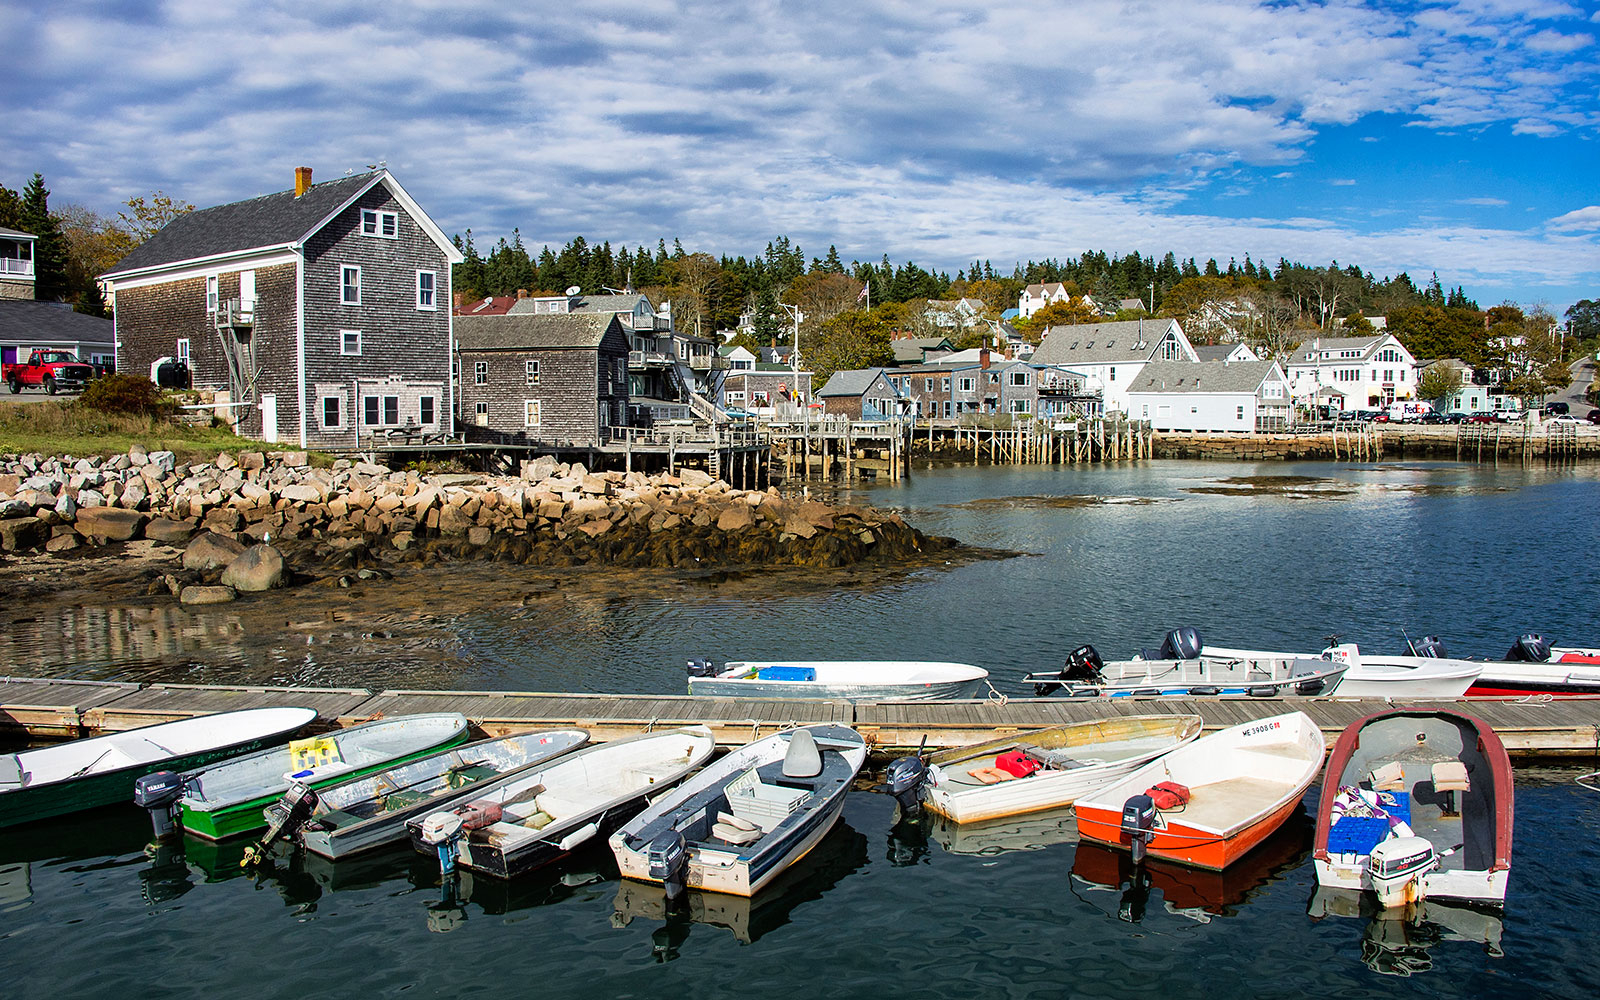 deer isle dating site Search results 506 matching properties - showing 1 - 10 sort  located just off sylvester cove and the village of sunset in deer isle, sheephead island is .